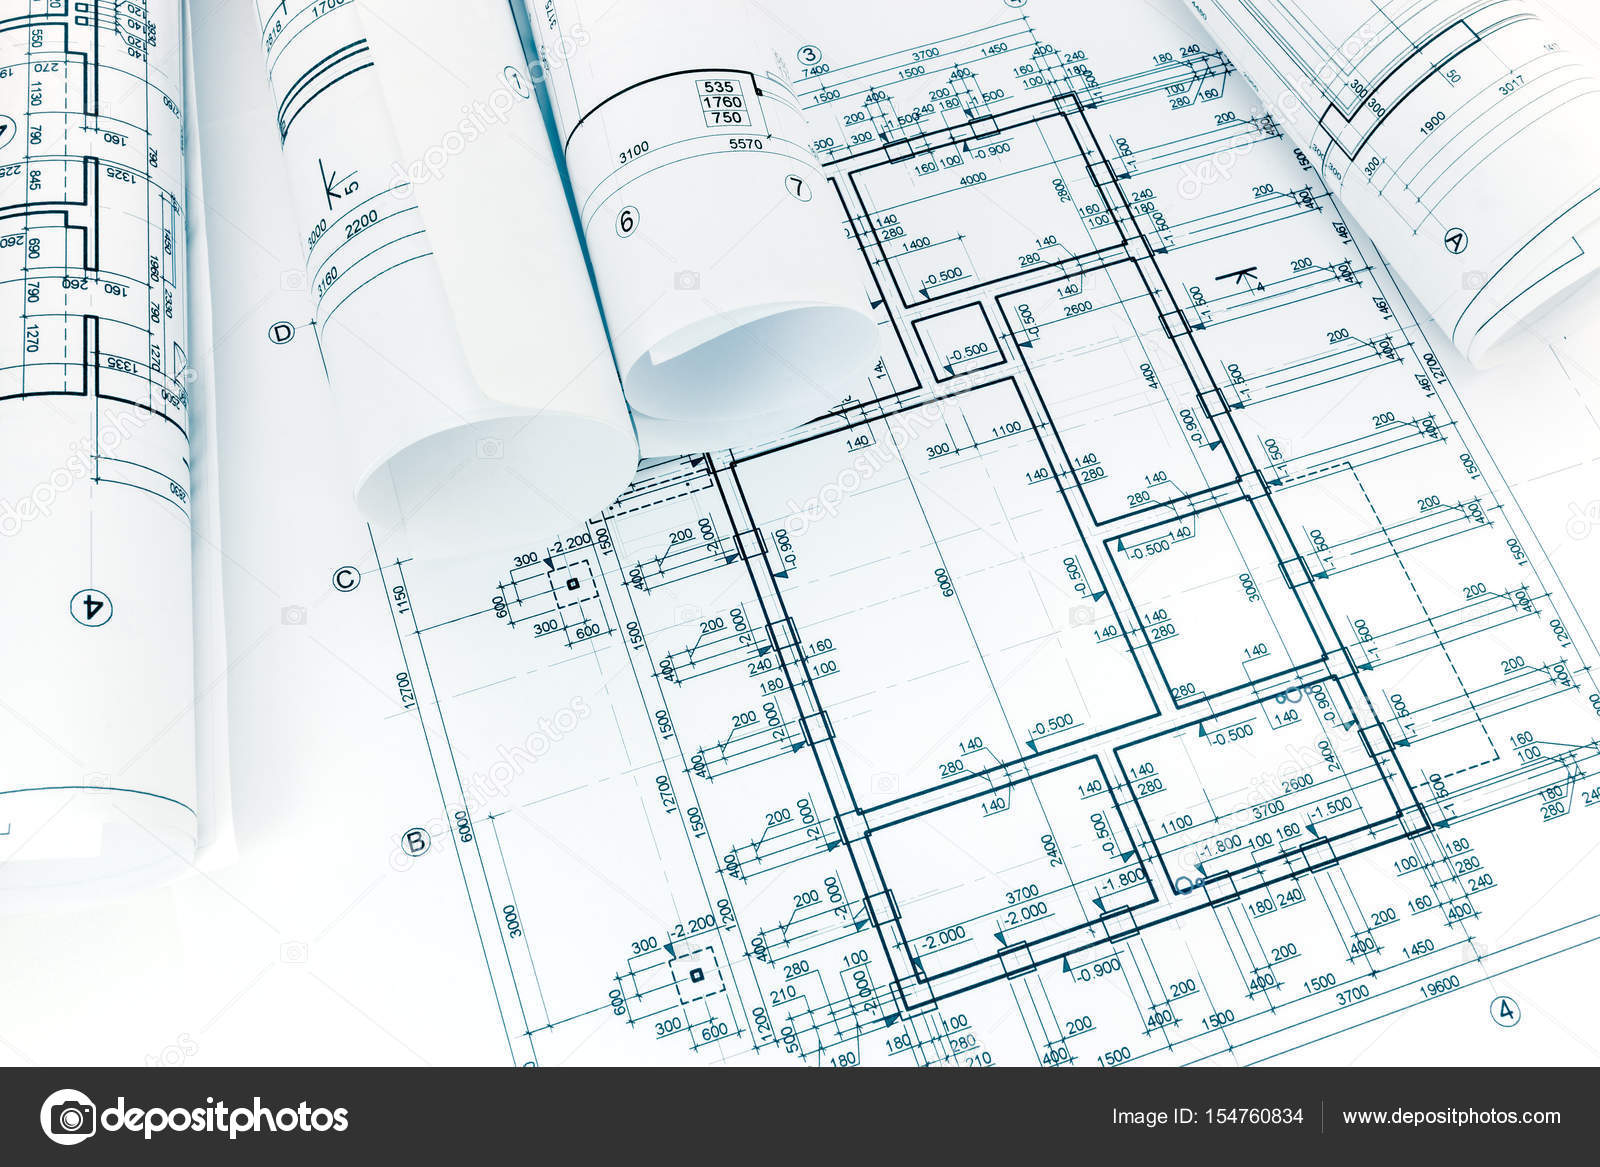 Rolled Building Plans On Architectural Blueprint Background Stock